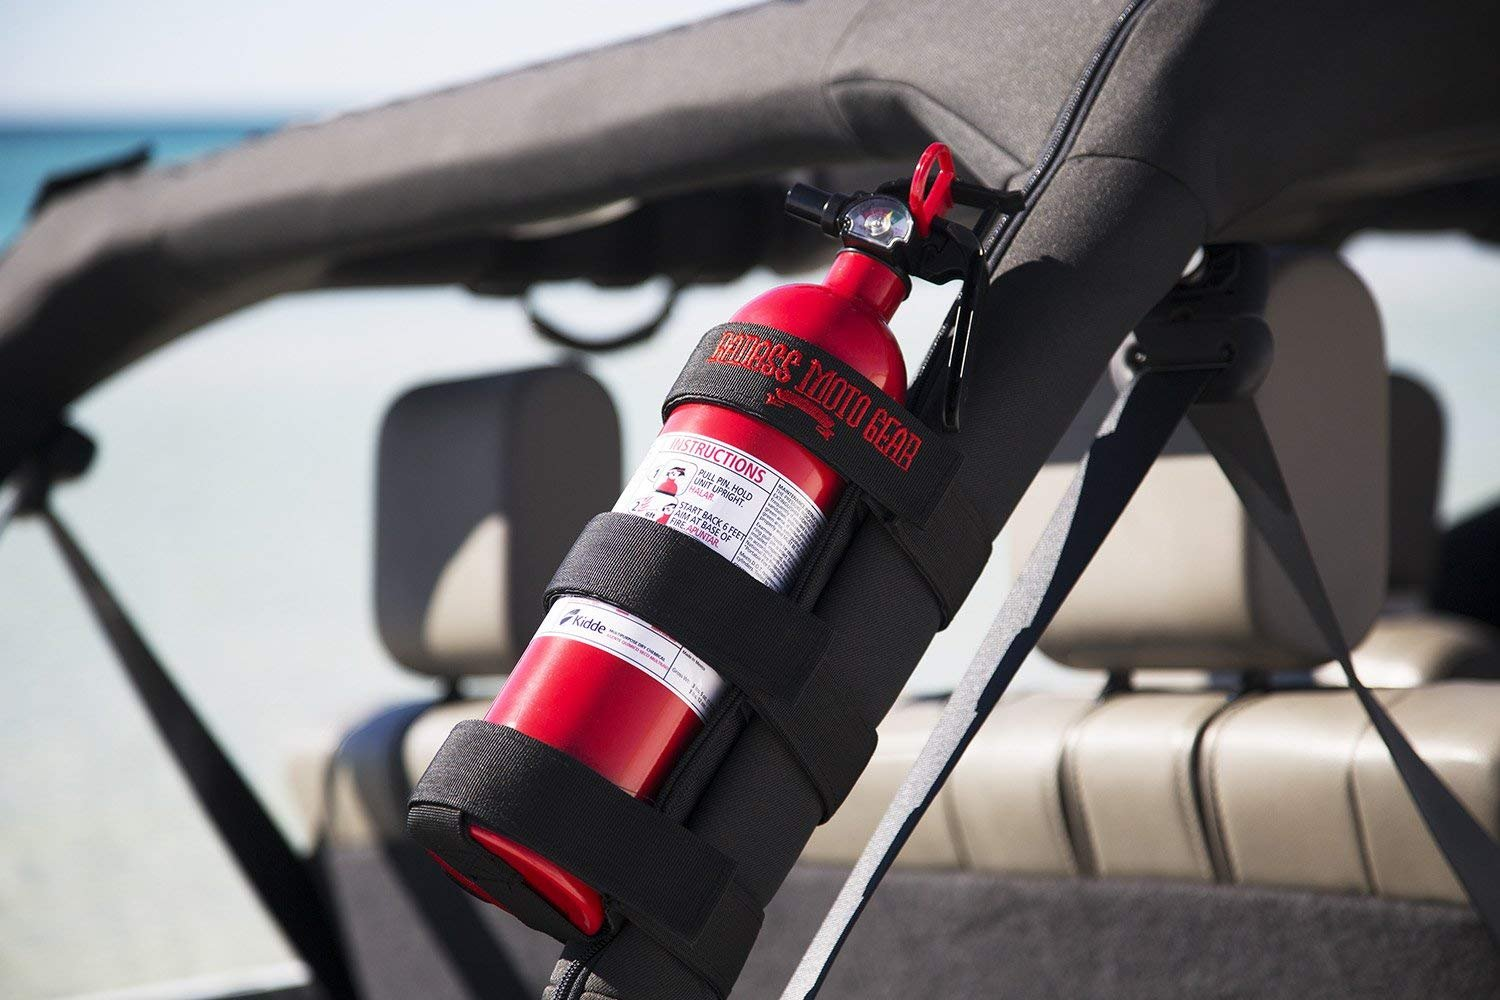 Badass Moto Gear Adjustable Roll Bar Fire Extinguisher Holder for Jeeps – Durable Stitching. Easy Install. for Jeep Wrangler, Unlimited, CJ, JK, TJ, Rubicon, Sahara, Sport. Extinguisher not Included. by Badass Motogear (Image #2)